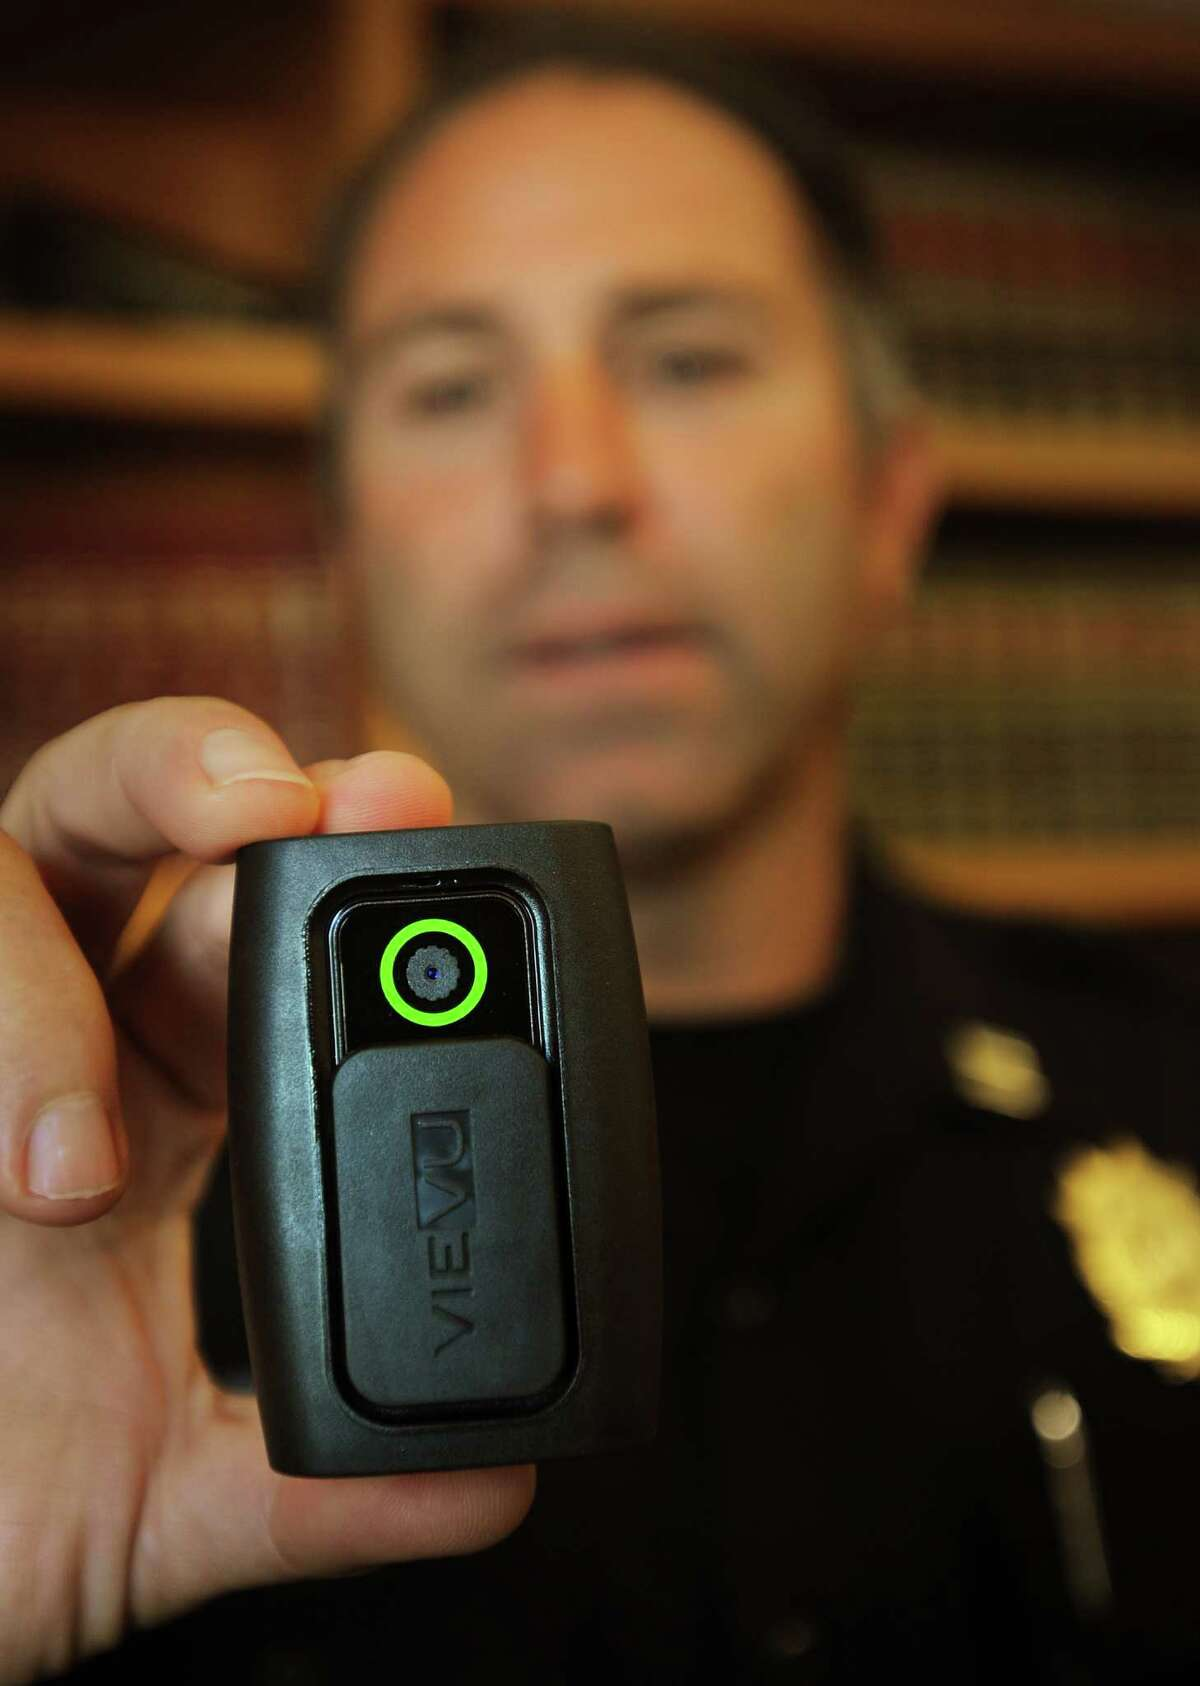 Westport police Captain Sam Arciola holds one of the department's new Vievu body cameras in Westport, Conn. on Thursday, October 9, 2014.